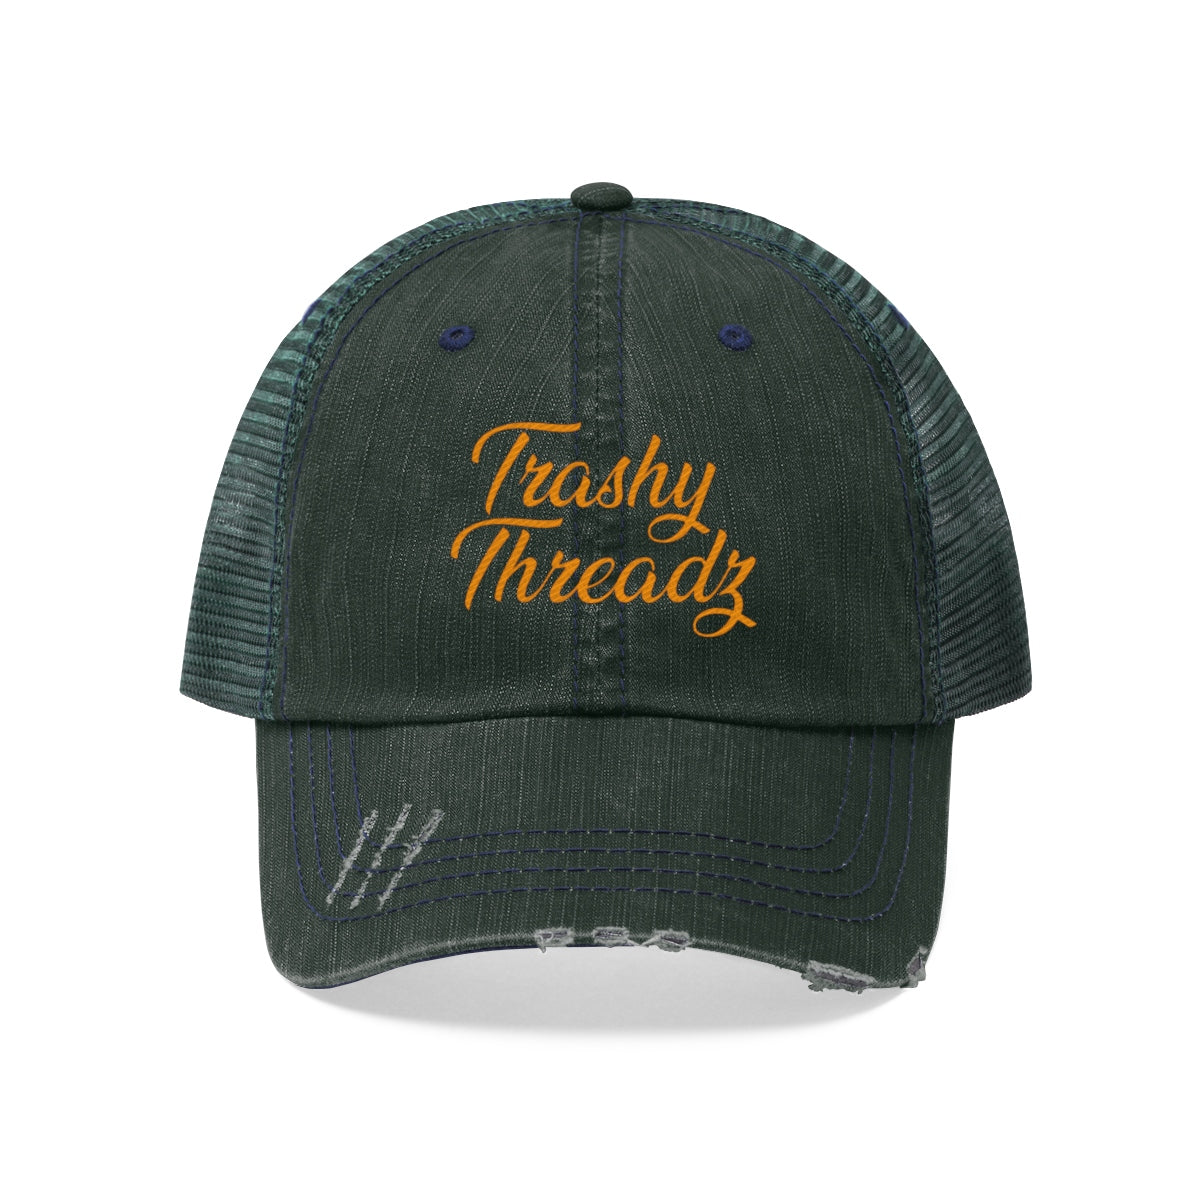 Unisex Trashy Threadz Trucker Hat